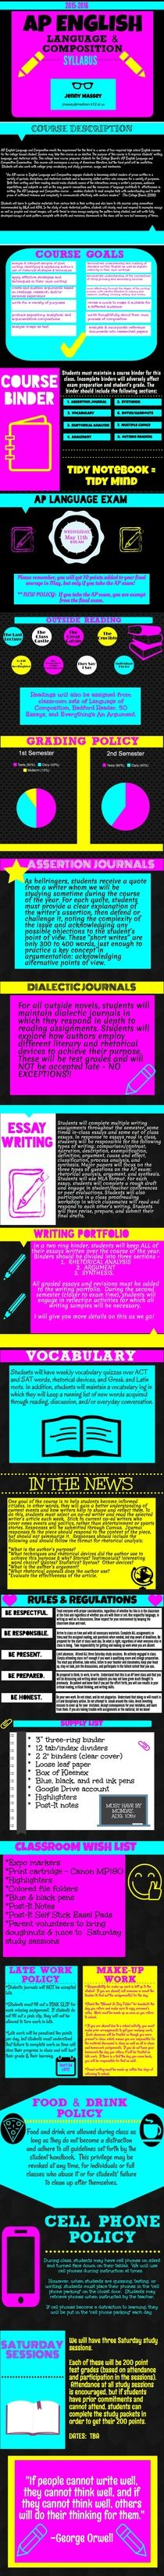 What is the best editing site for helping people to edit english literature essays?